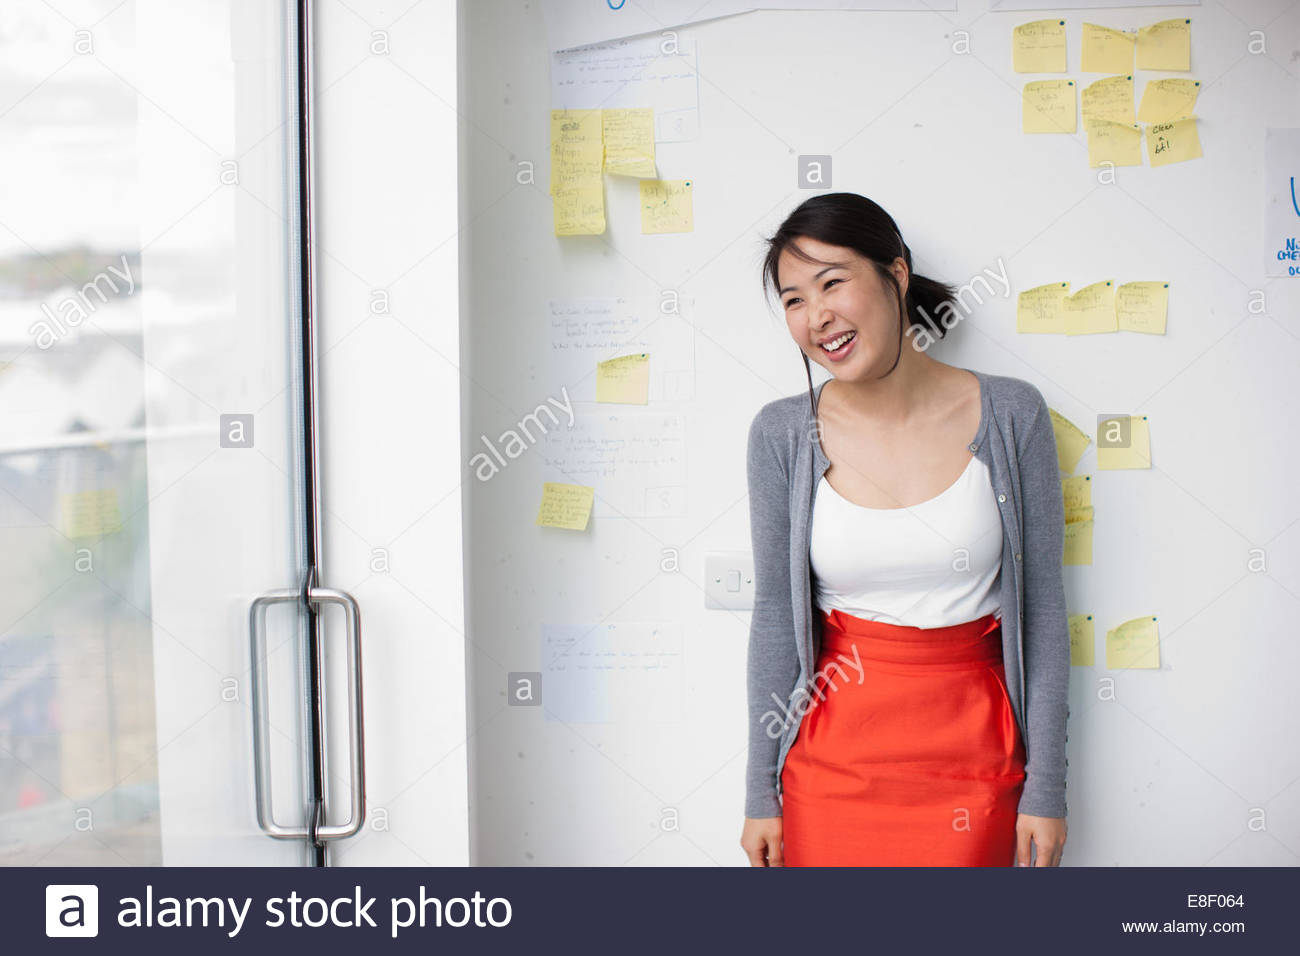 Smiling businesswoman with in front of whiteboard with adhesive notes - Stock Image